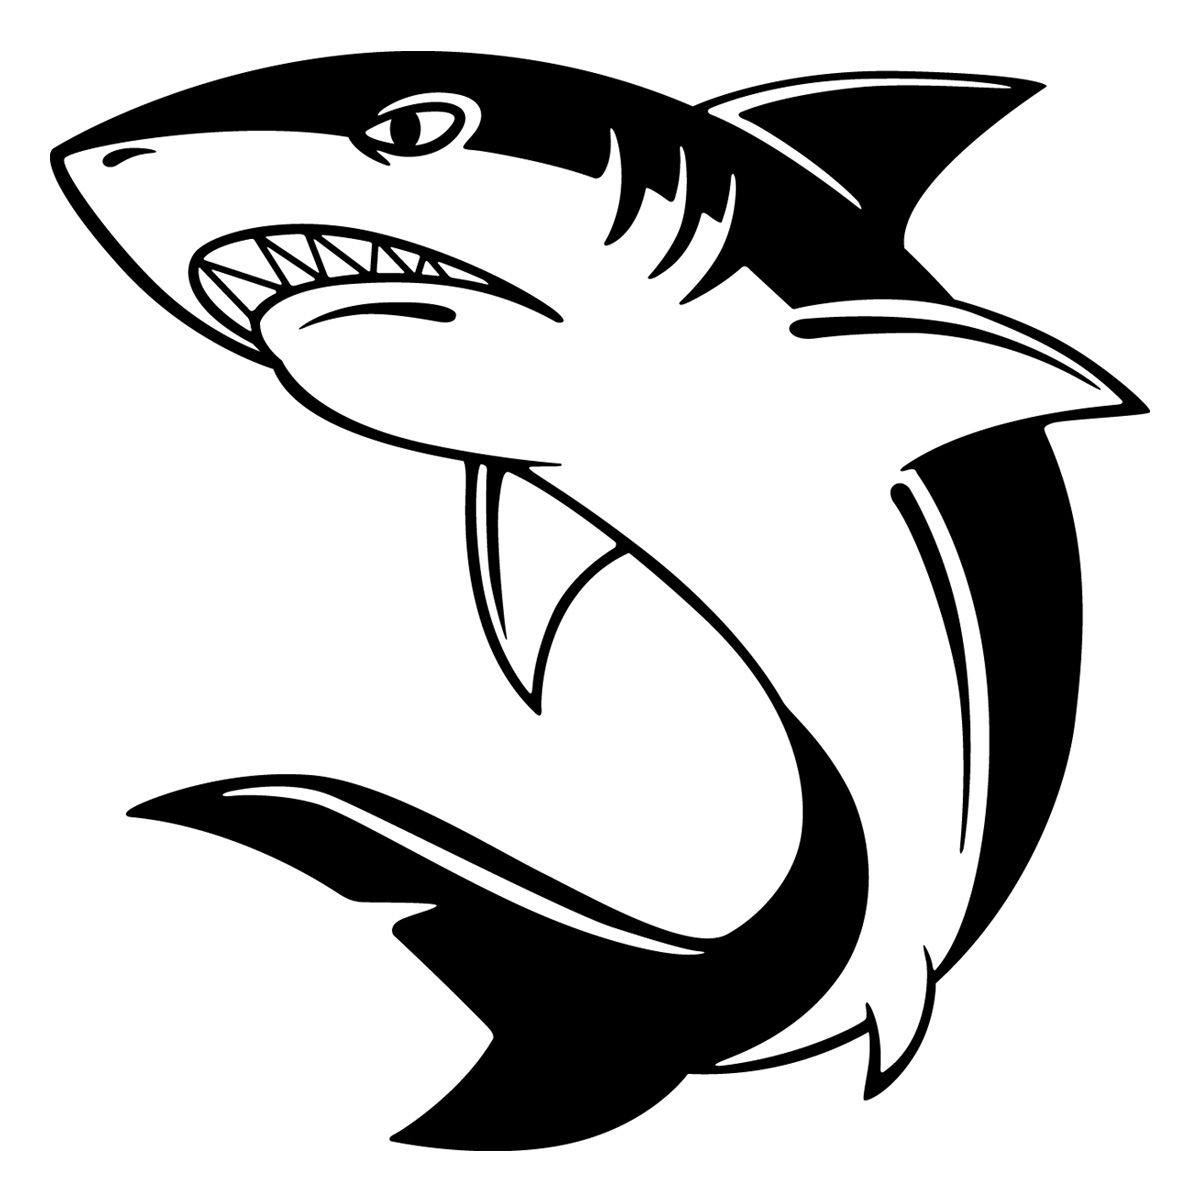 Shark Black And White Drawing Ourimgs